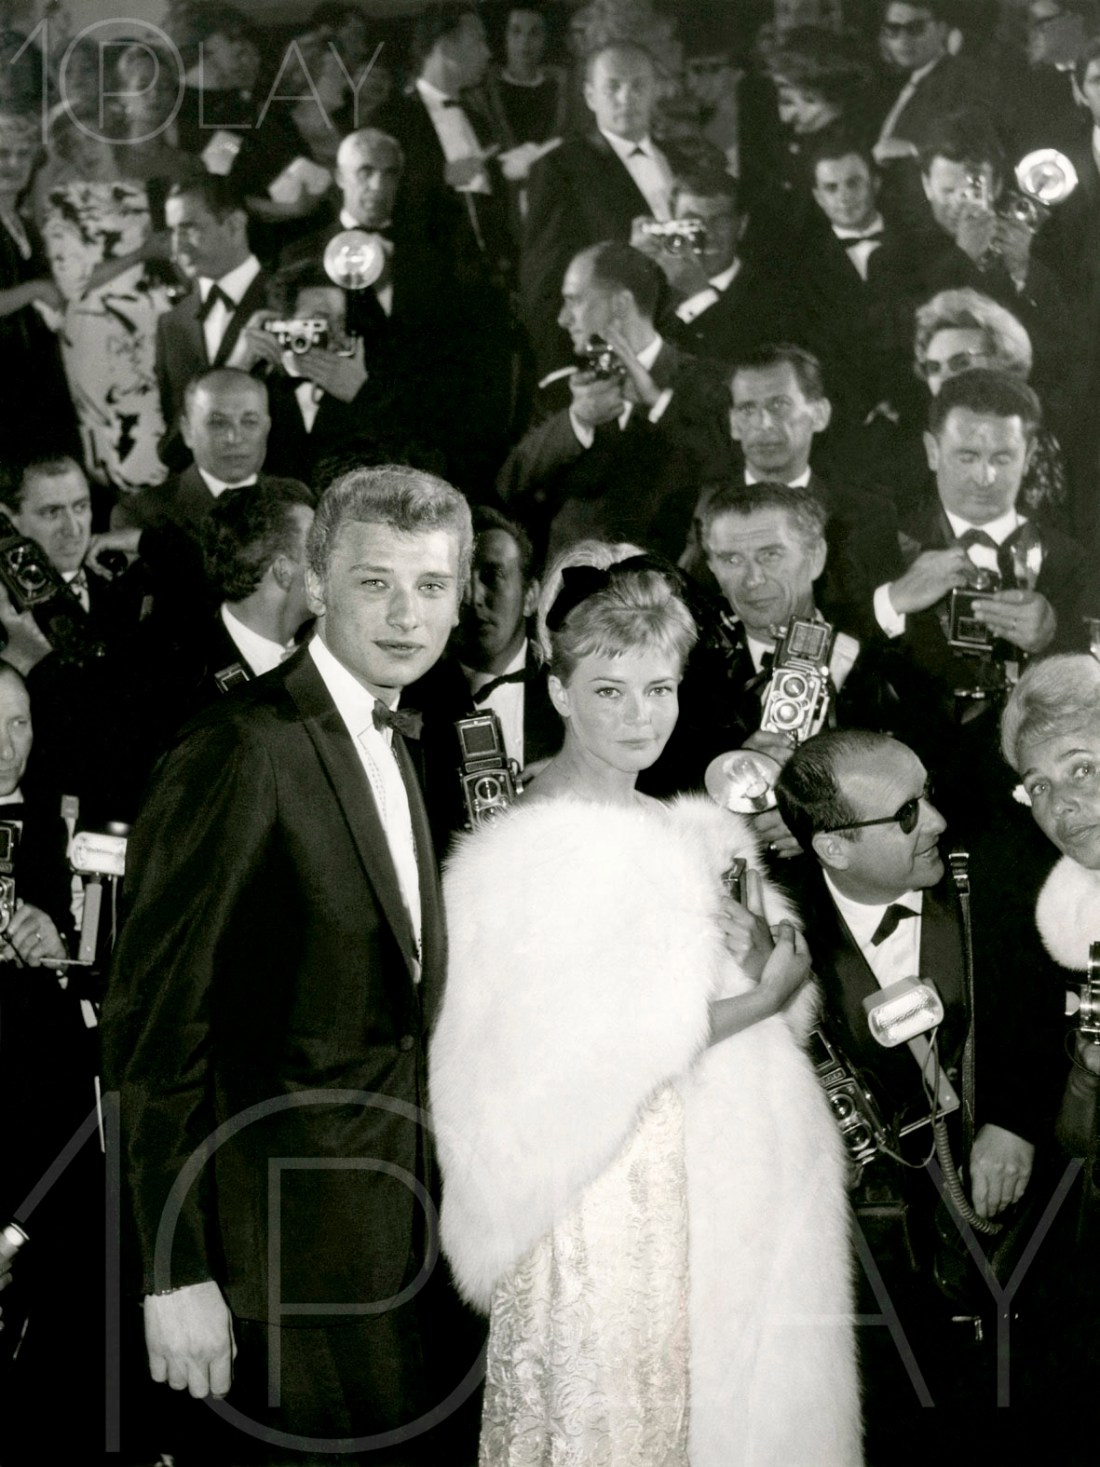 1962 Johnny Hallyday-Display-productions.com- Festiival Cannes